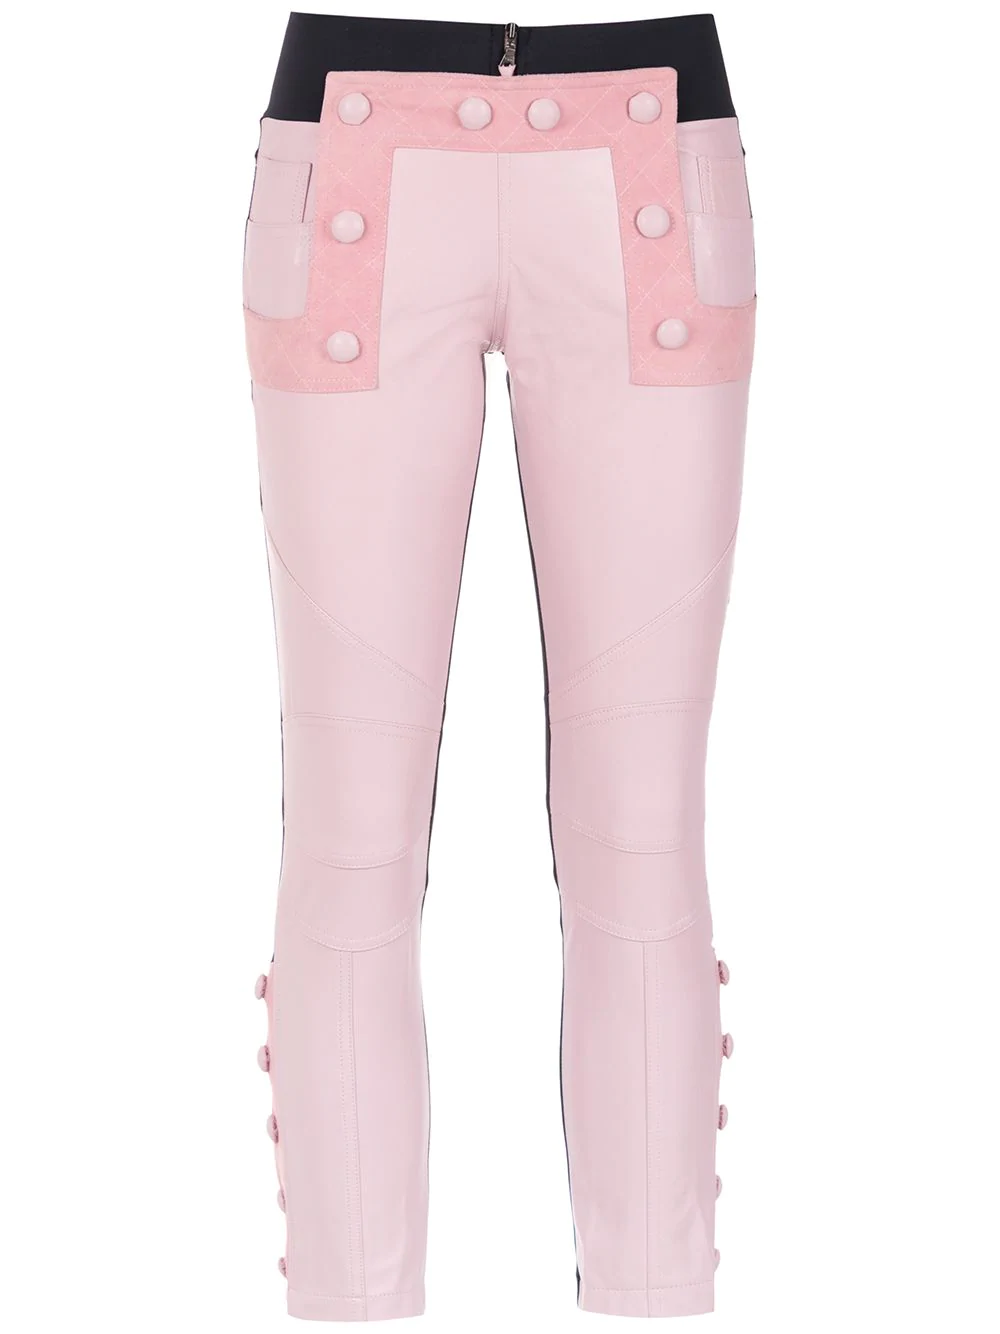 0d643a7903 Andrea Bogosian Leather Skinny Trousers - Pink | ModeSens